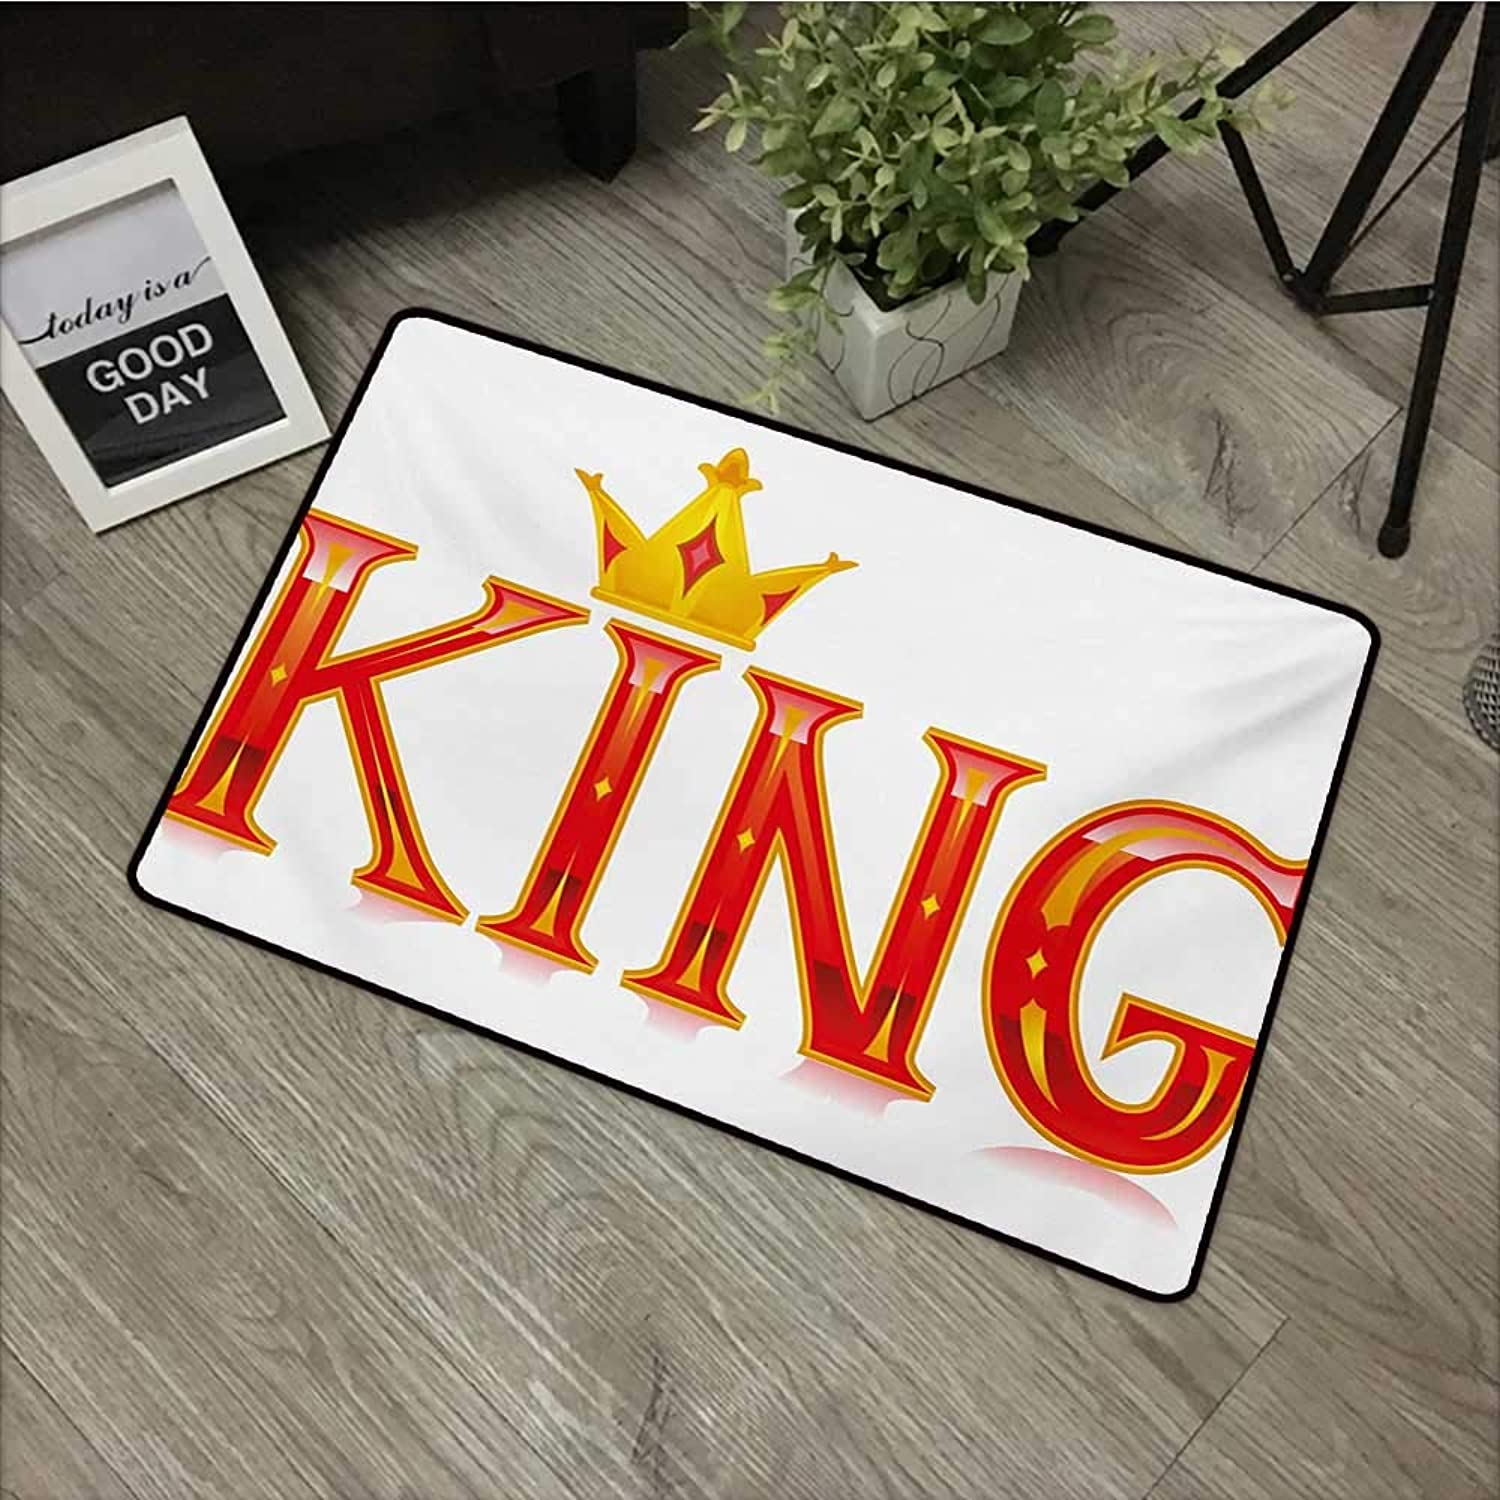 Interior mat W35 x L59 INCH King,Royal King Quote in Capital Lettering with Crown and Diamond Shapes on White,Vermilion and Yellow Non-Slip, with Non-Slip Backing,Non-Slip Door Mat Carpet